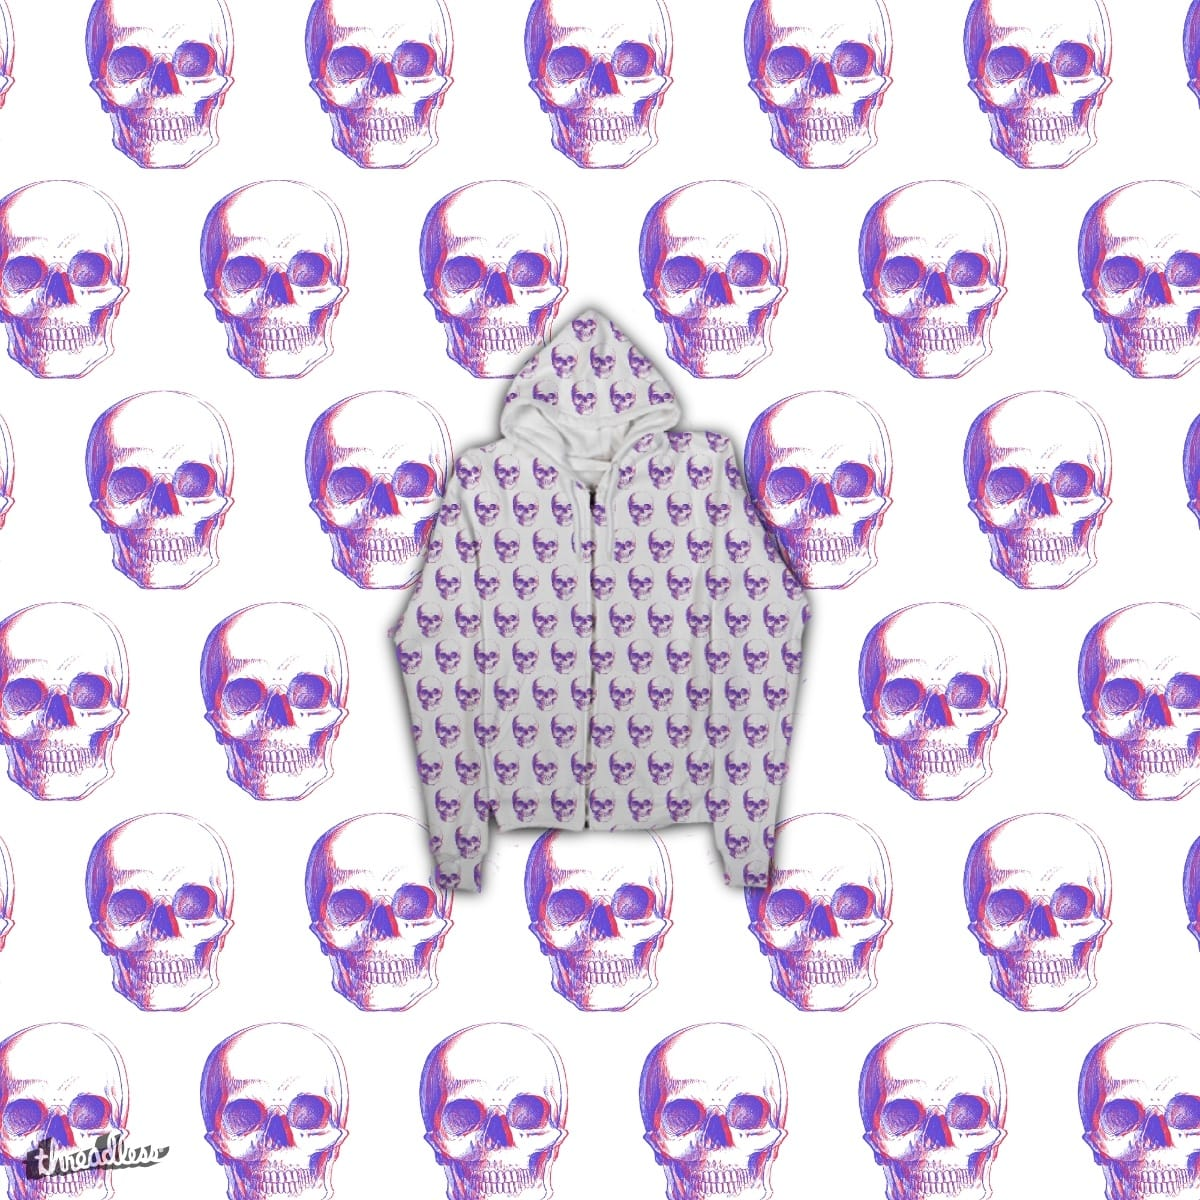 Op-Skull by rkrrk on Threadless